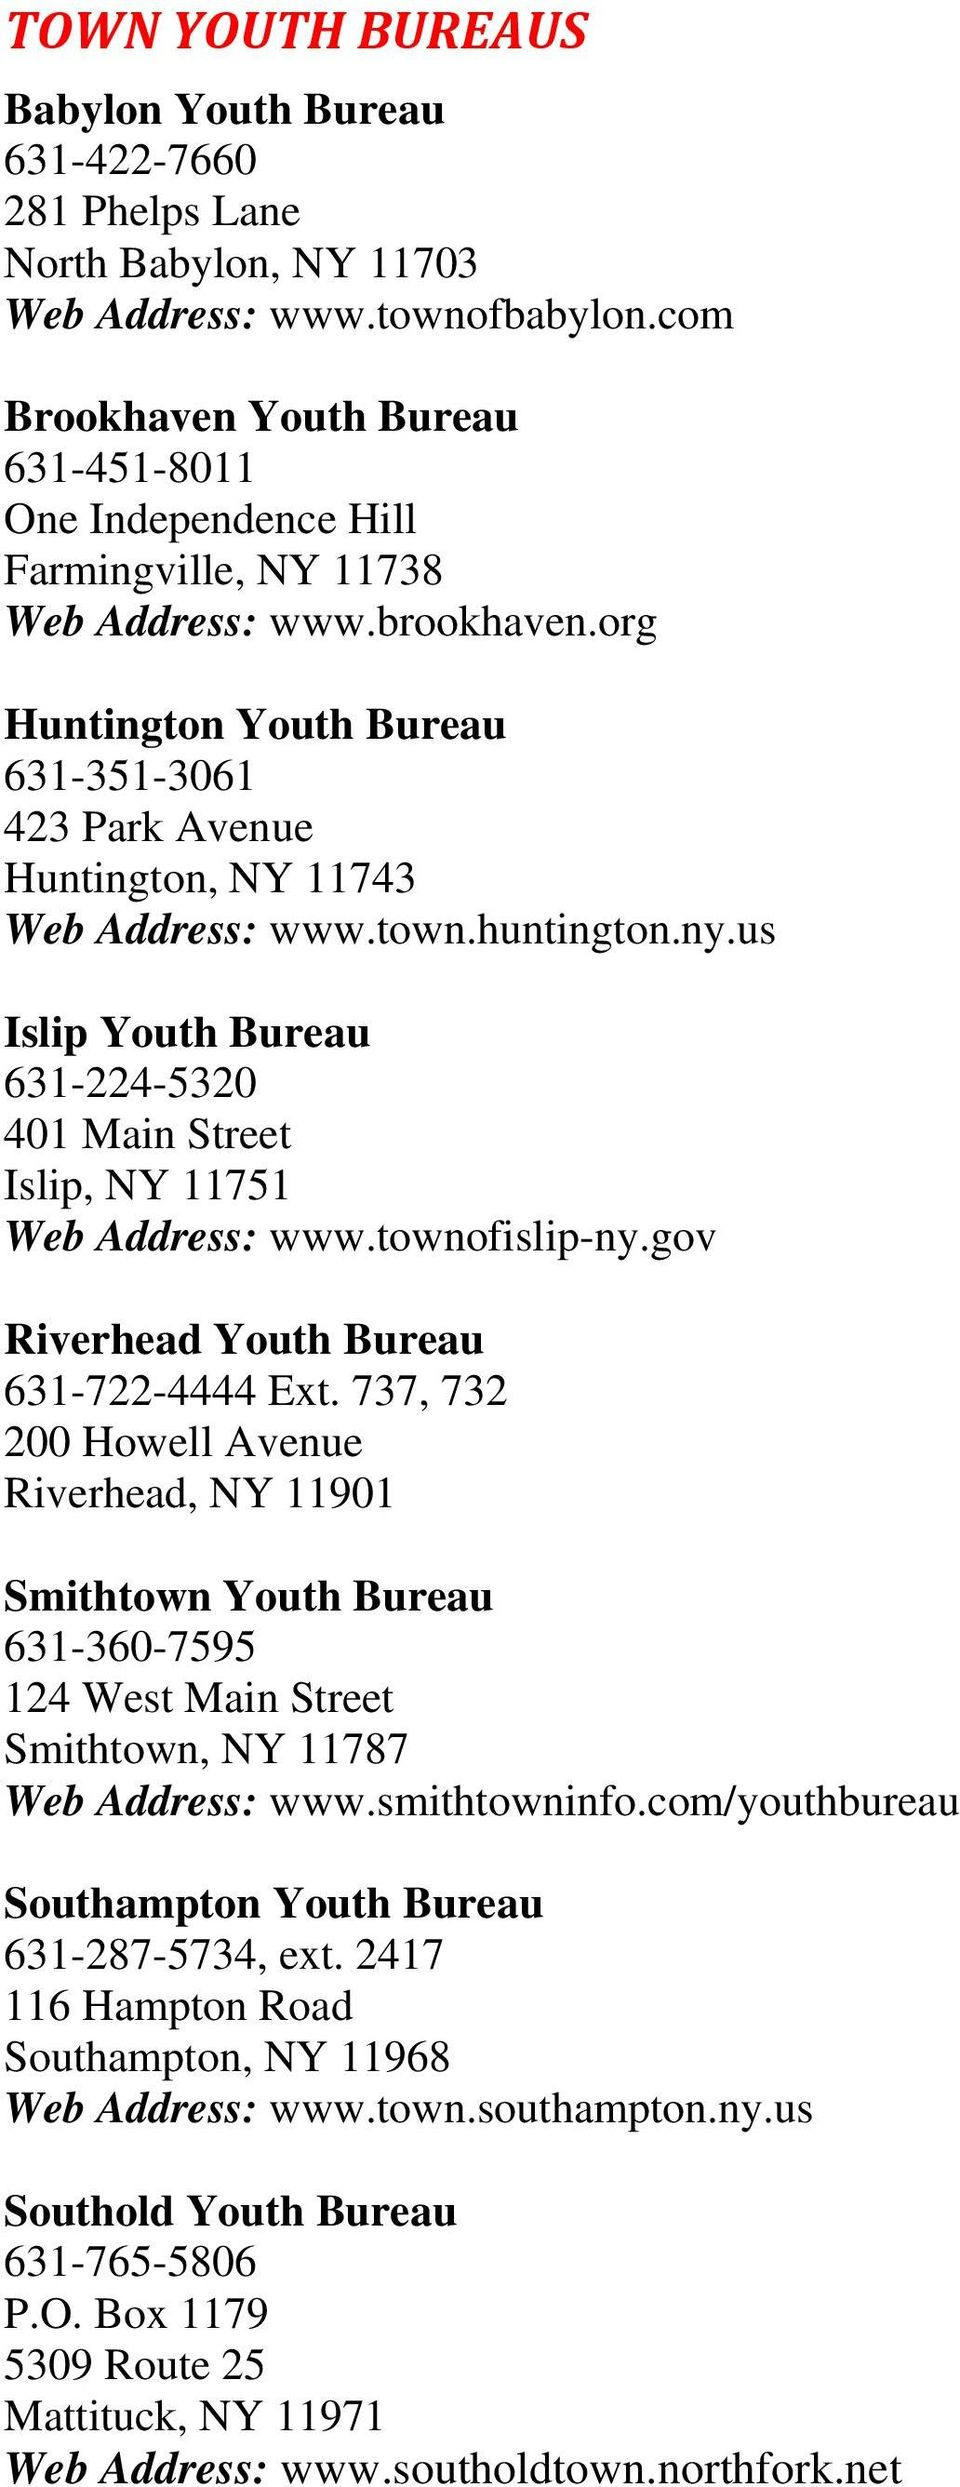 org Huntington Youth Bureau 631-351-3061 423 Park Avenue Huntington, NY 11743 Web Address: www.town.huntington.ny.us Islip Youth Bureau 631-224-5320 401 Main Street Islip, NY 11751 Web Address: www.